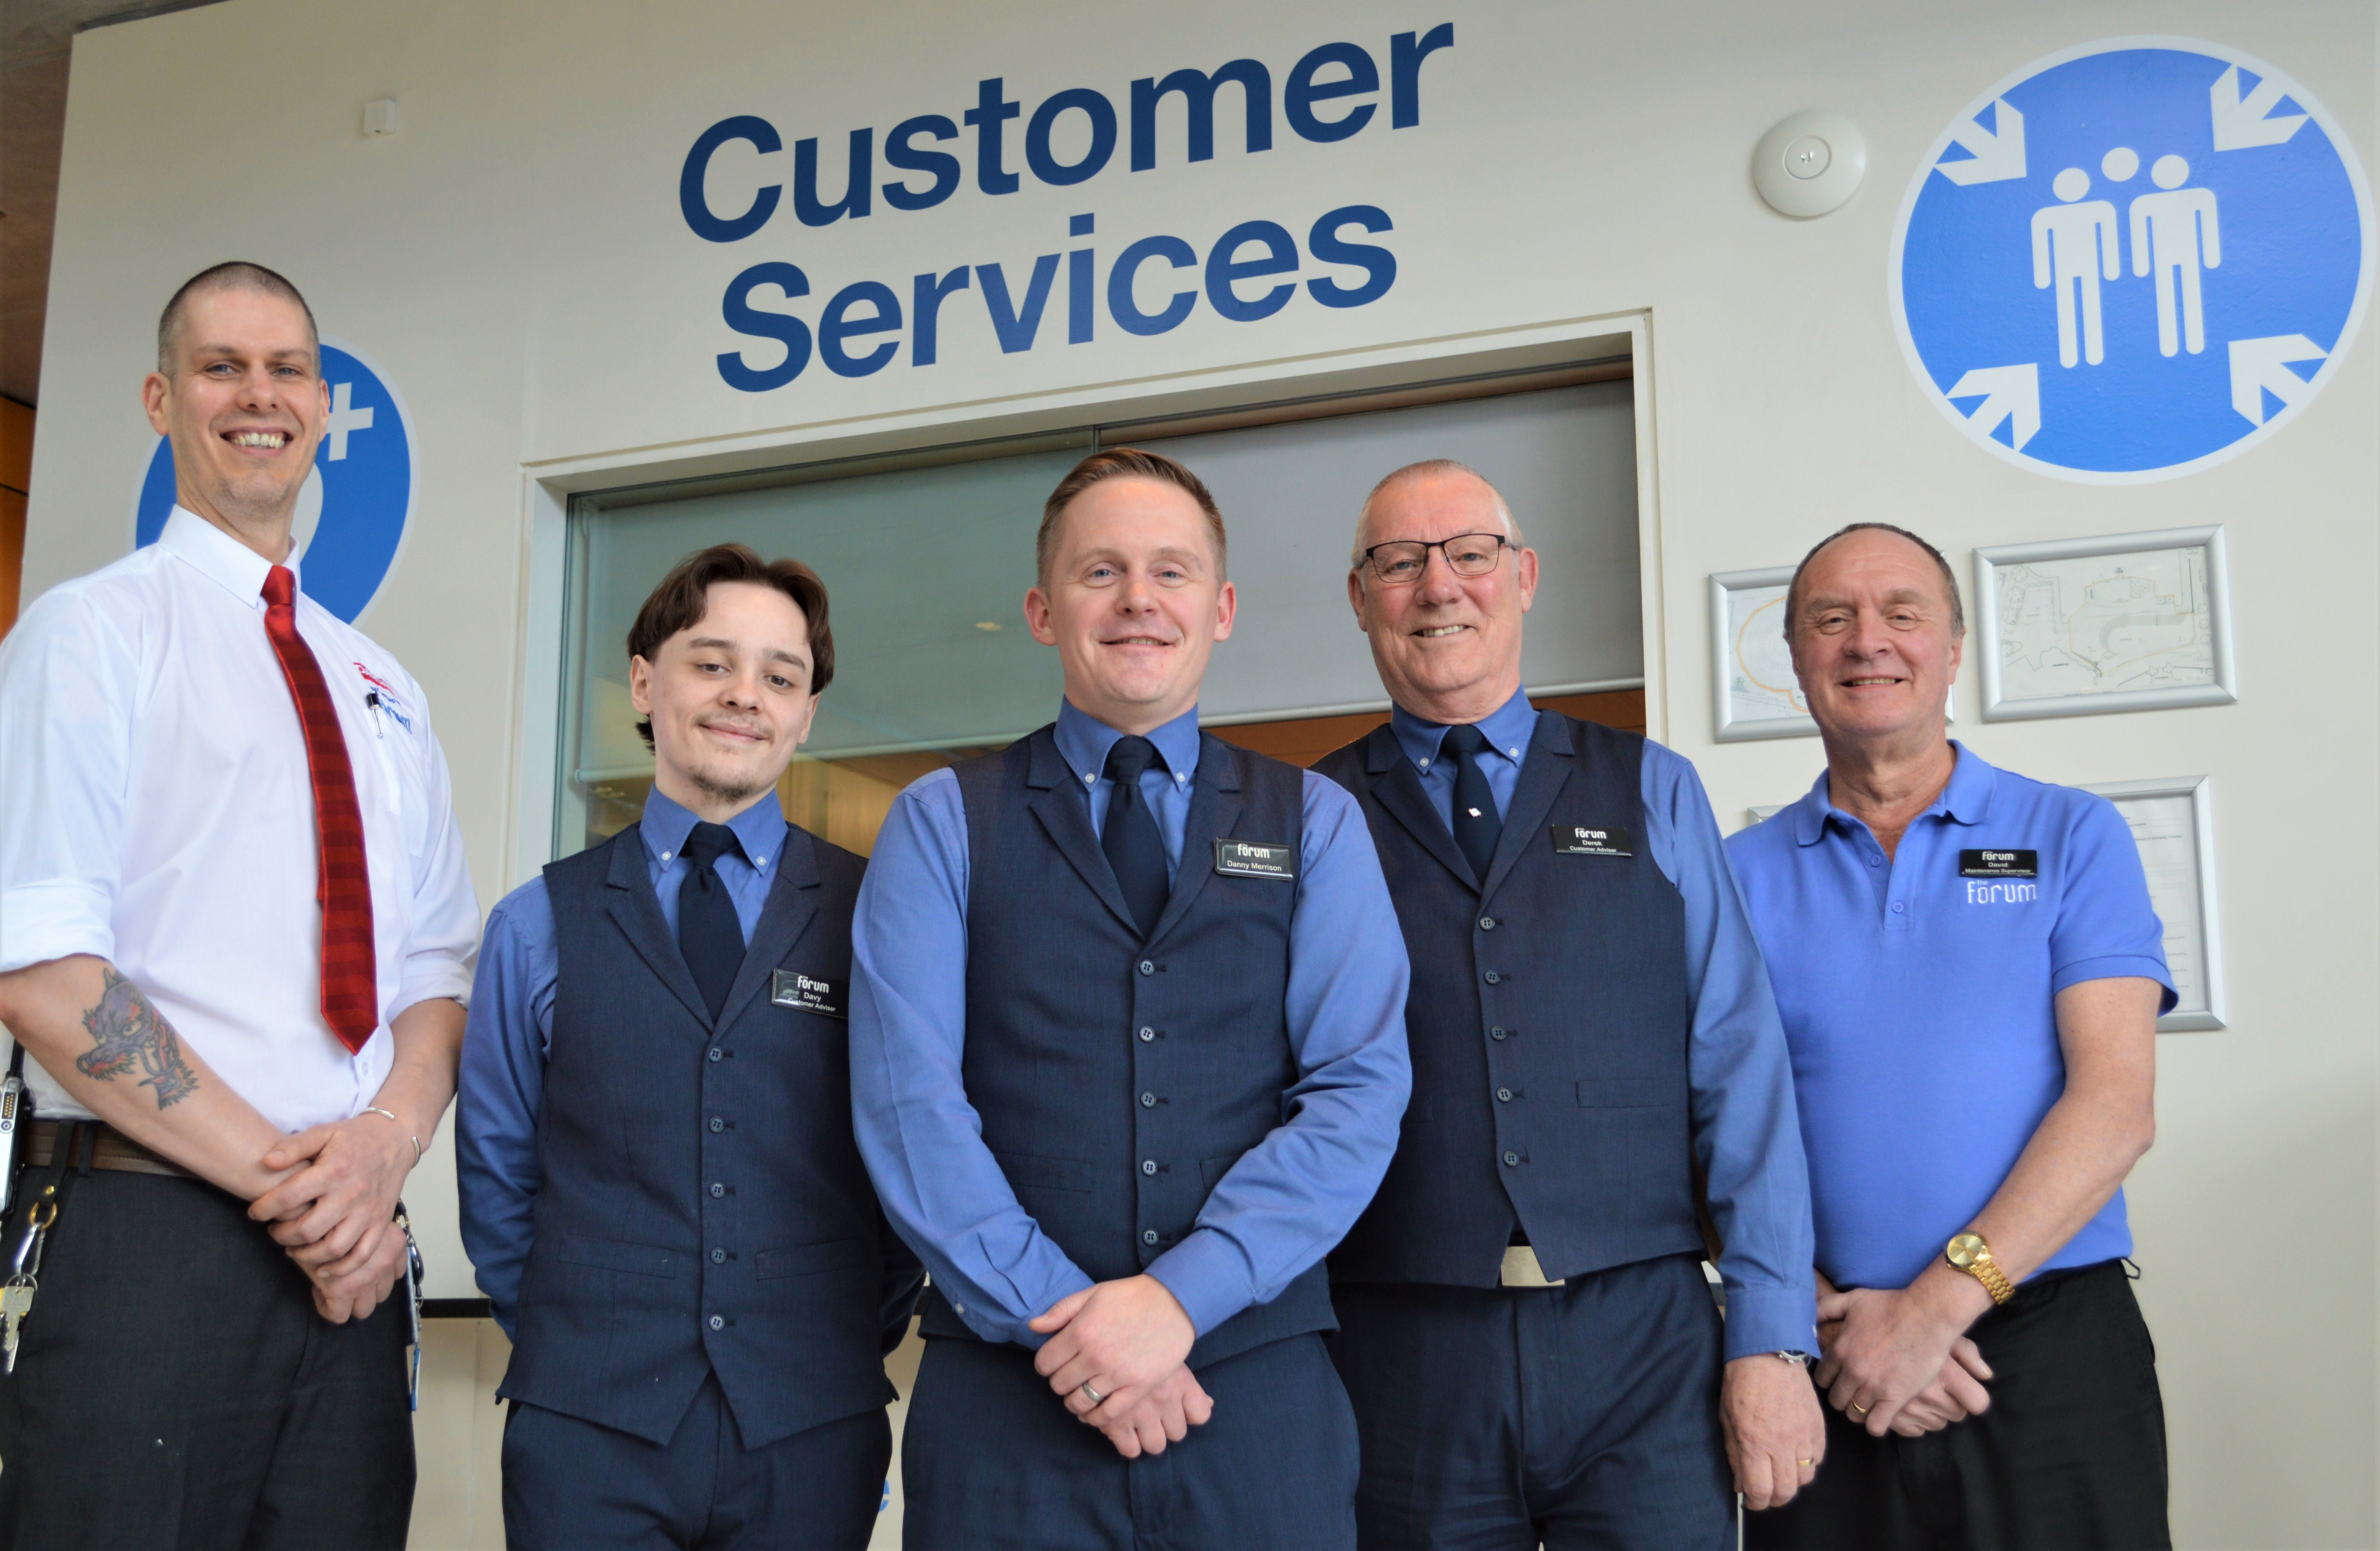 Our customer services team